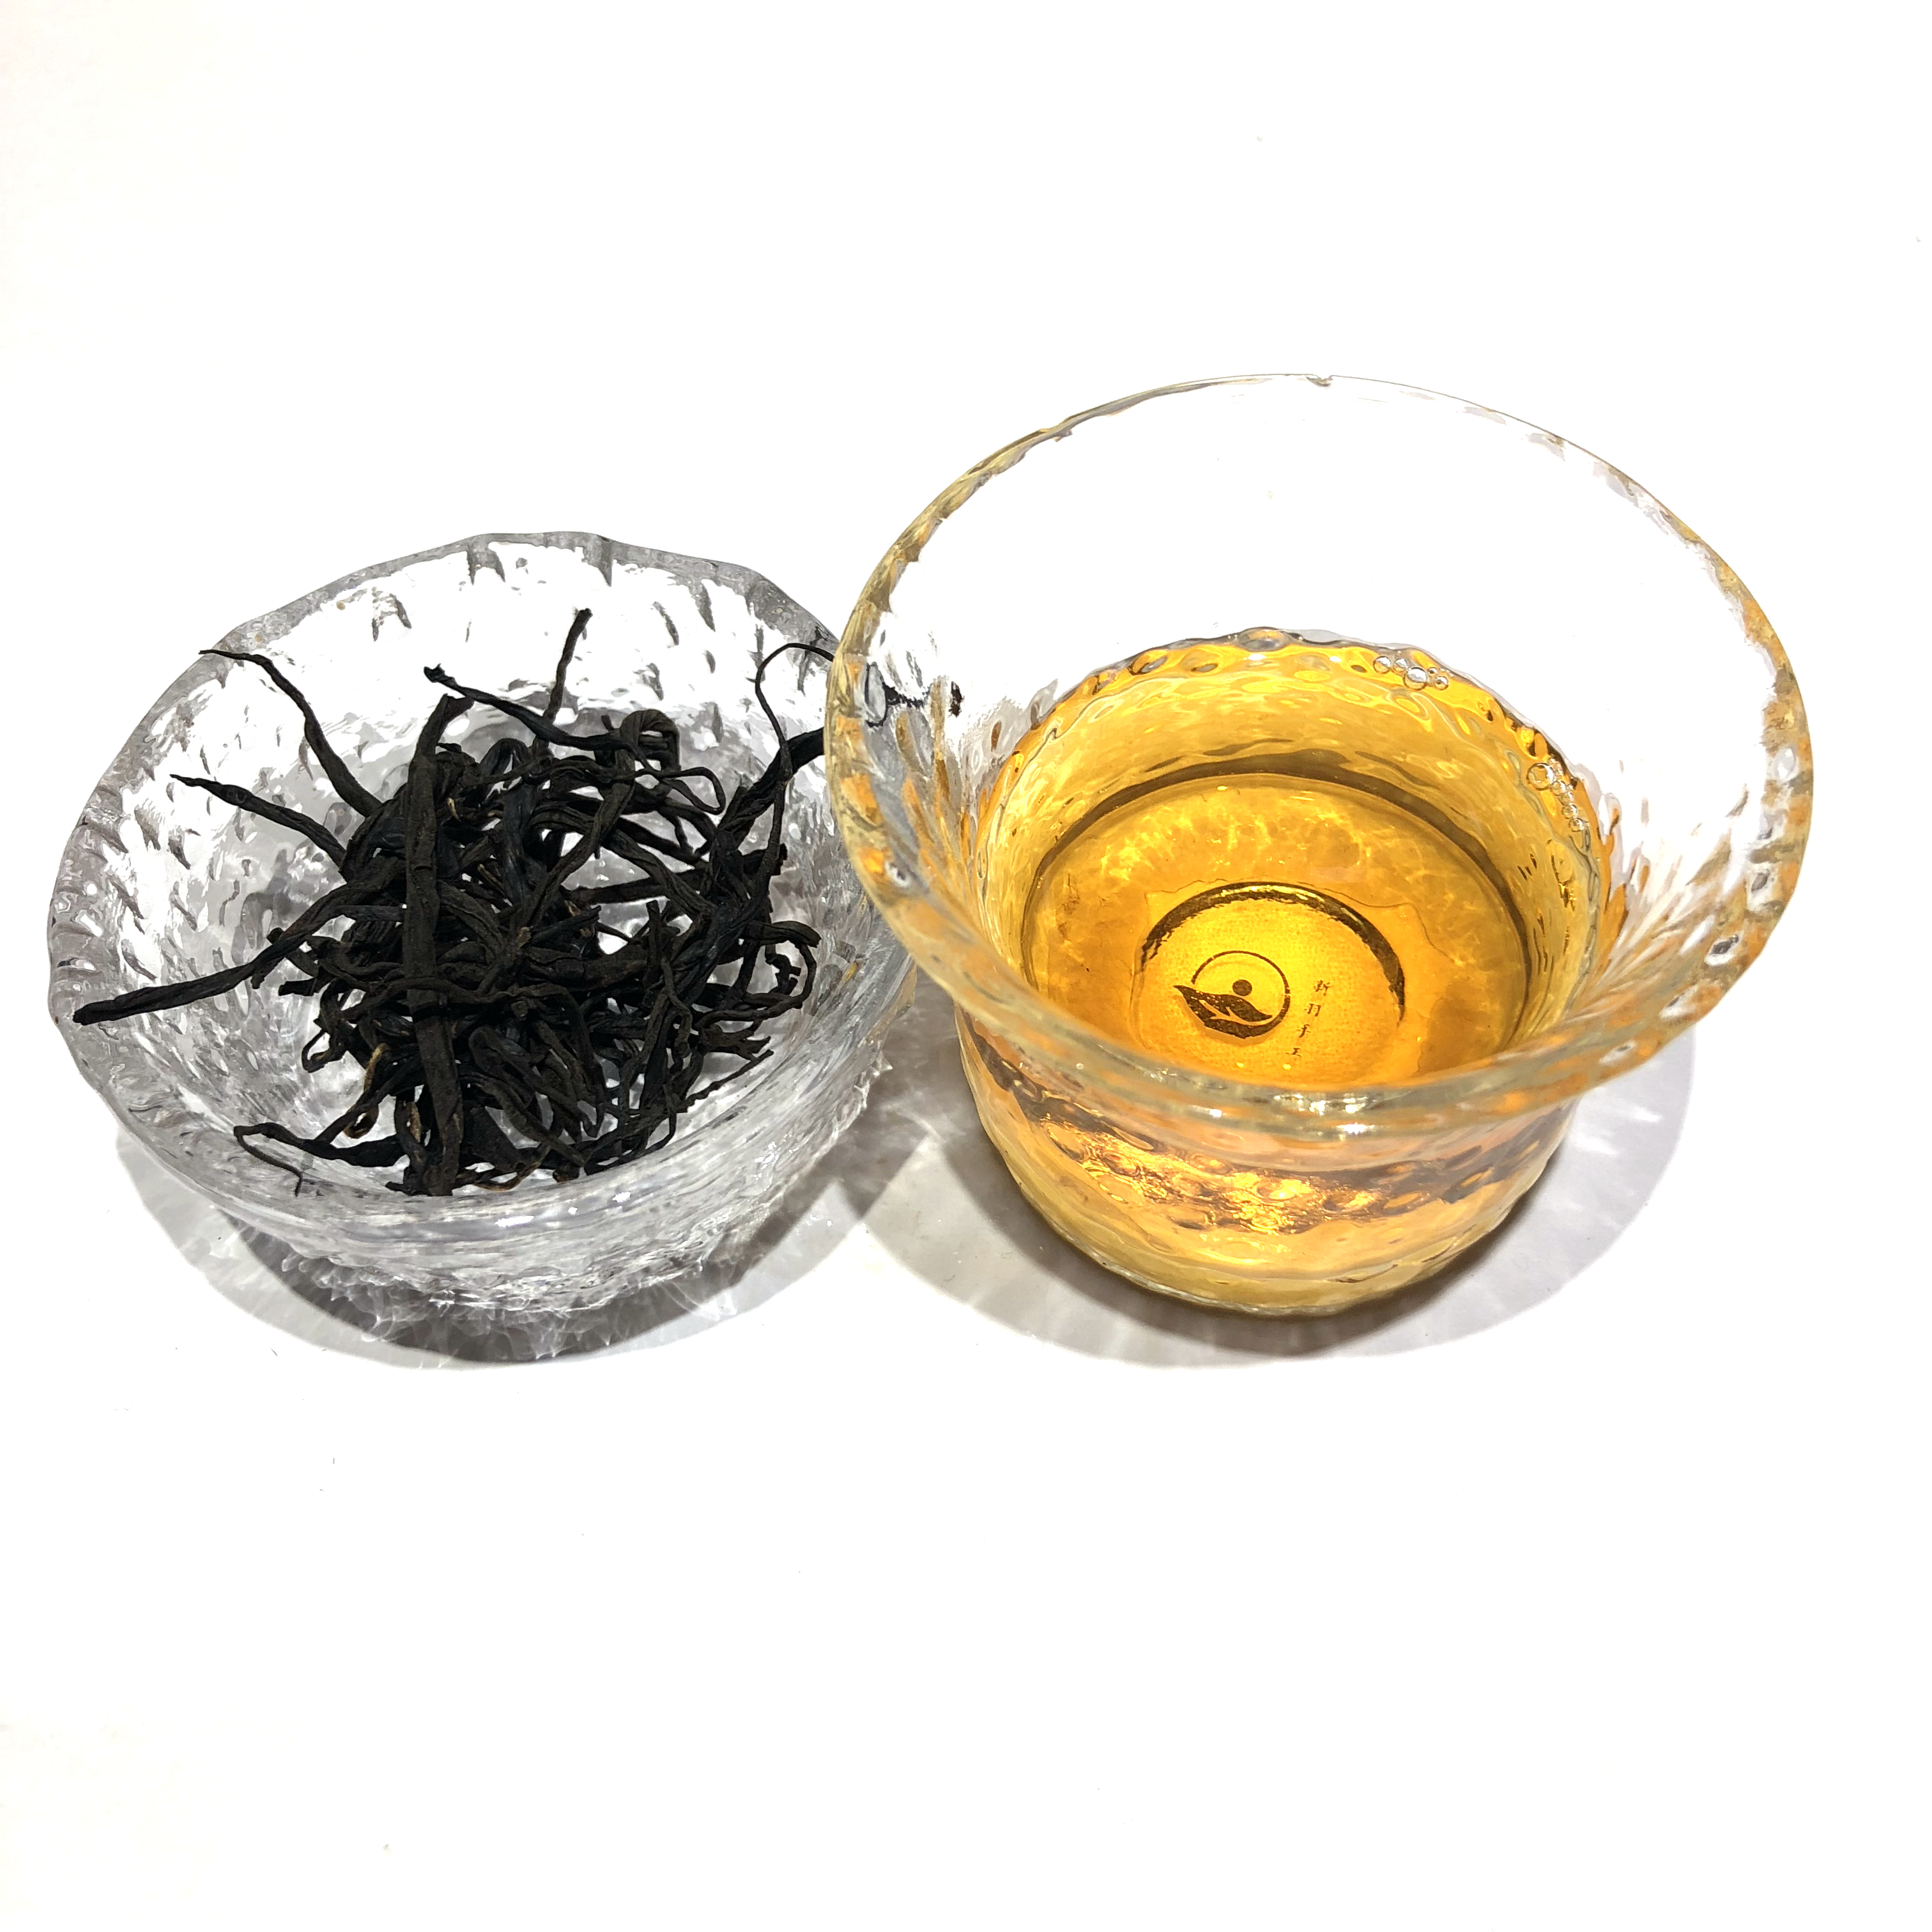 2019 New spring natural black tea in bulk - 4uTea | 4uTea.com